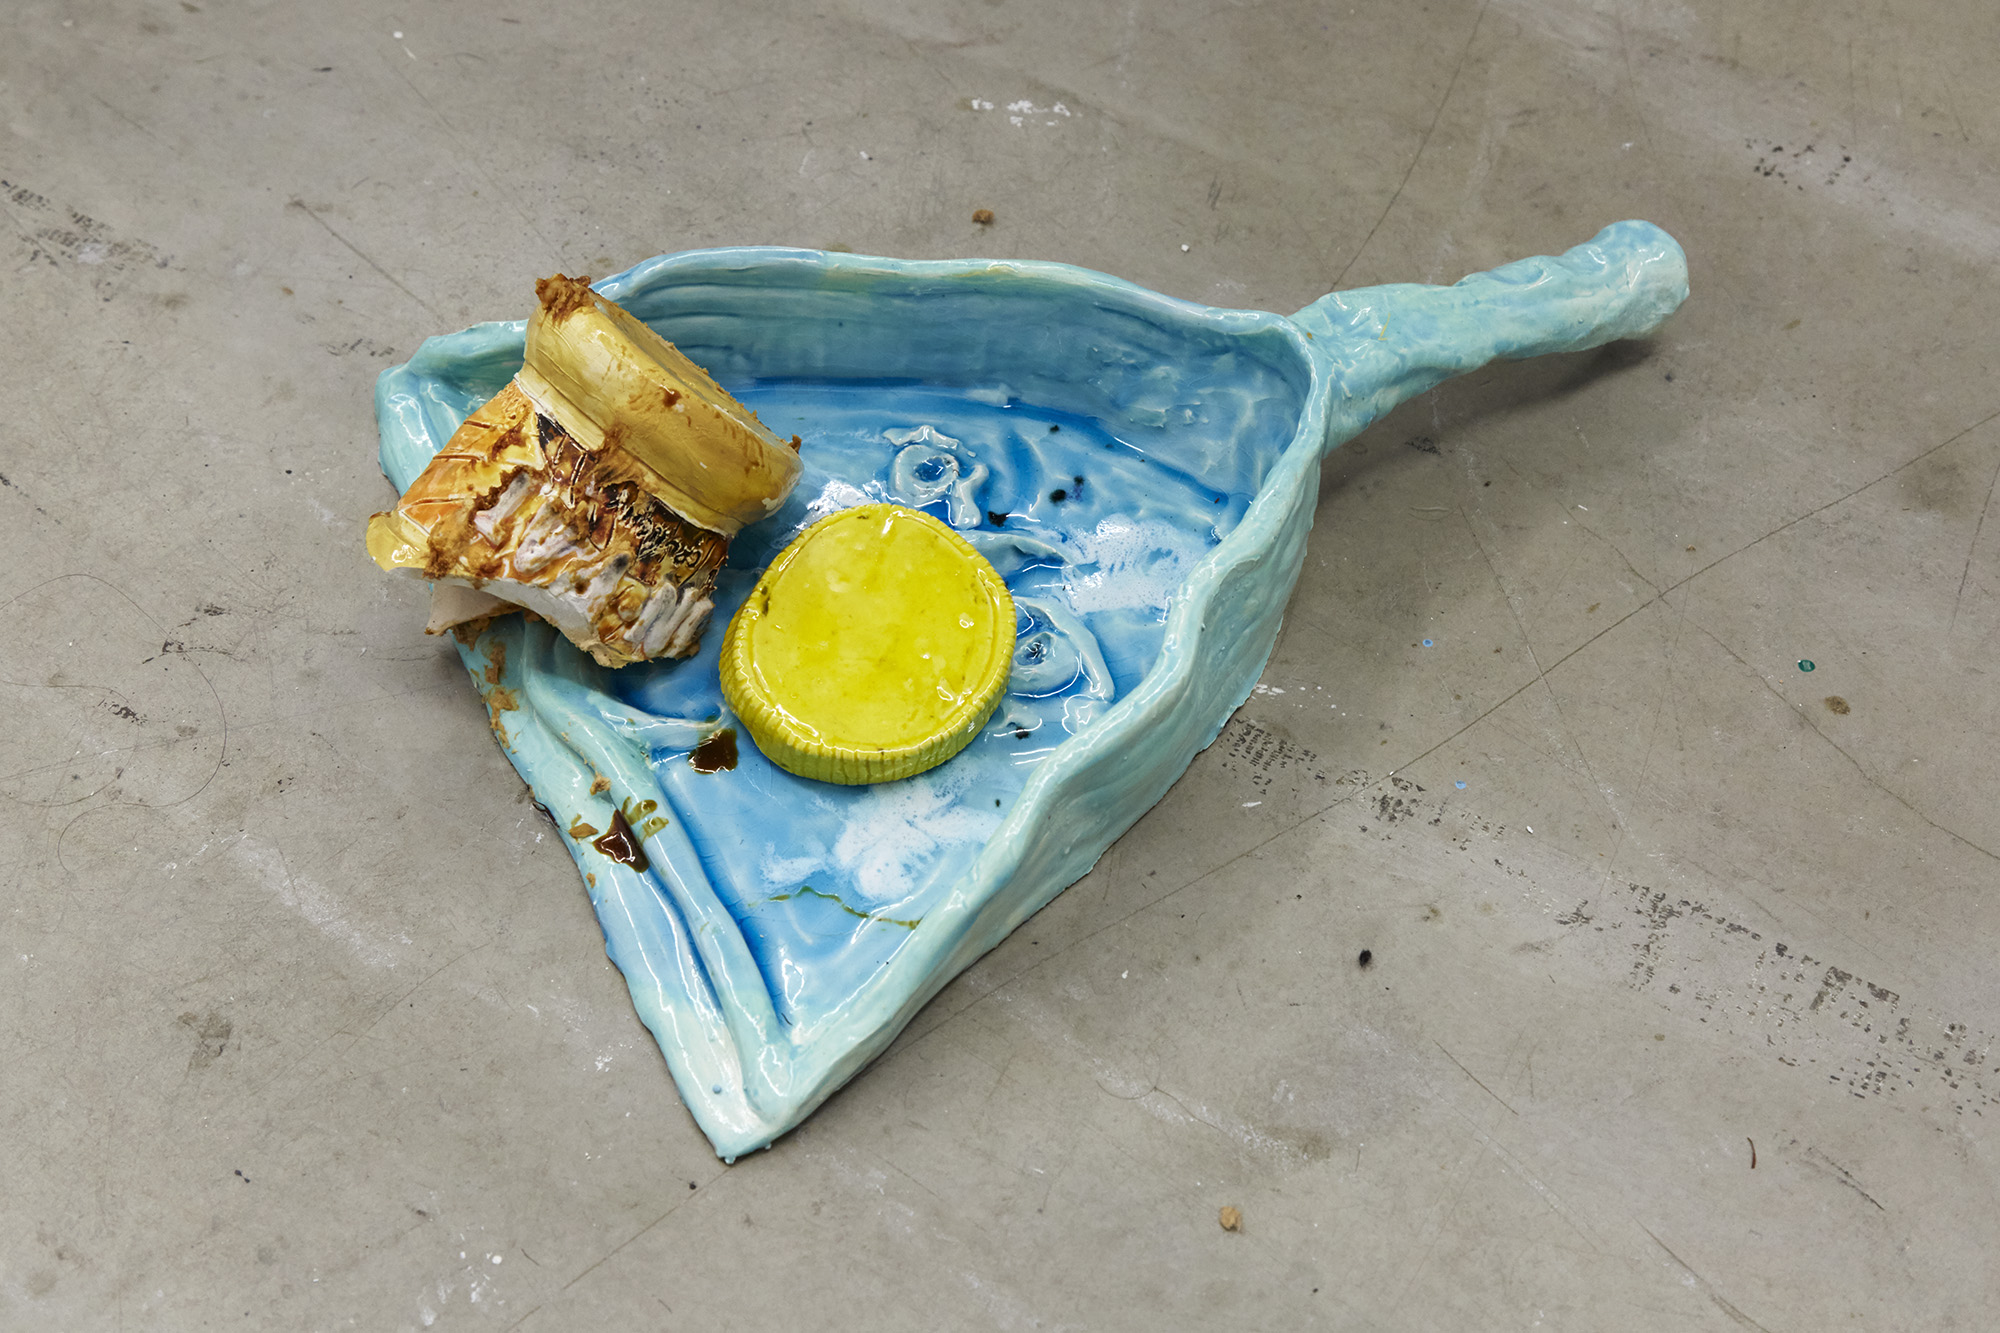 You'll have to pay for that Ceramic dust pan, broken ceramic Marmite and Peanut Butter Pots 5 x 38 x 31cm (pan) + dimensions variable, 2019